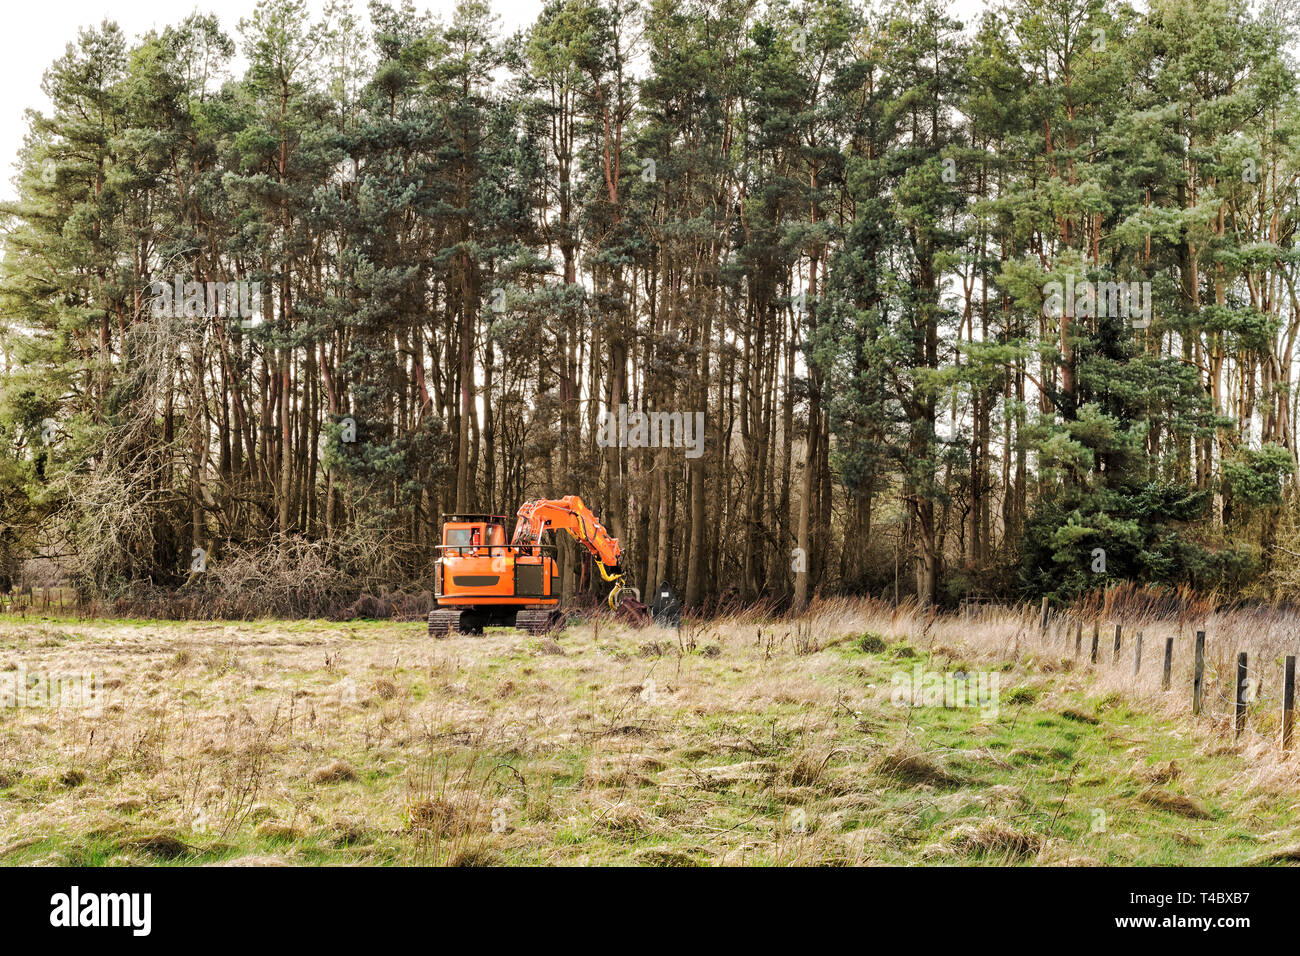 Harvester car doing forestry work at Loch Leven, Scotland - Stock Image